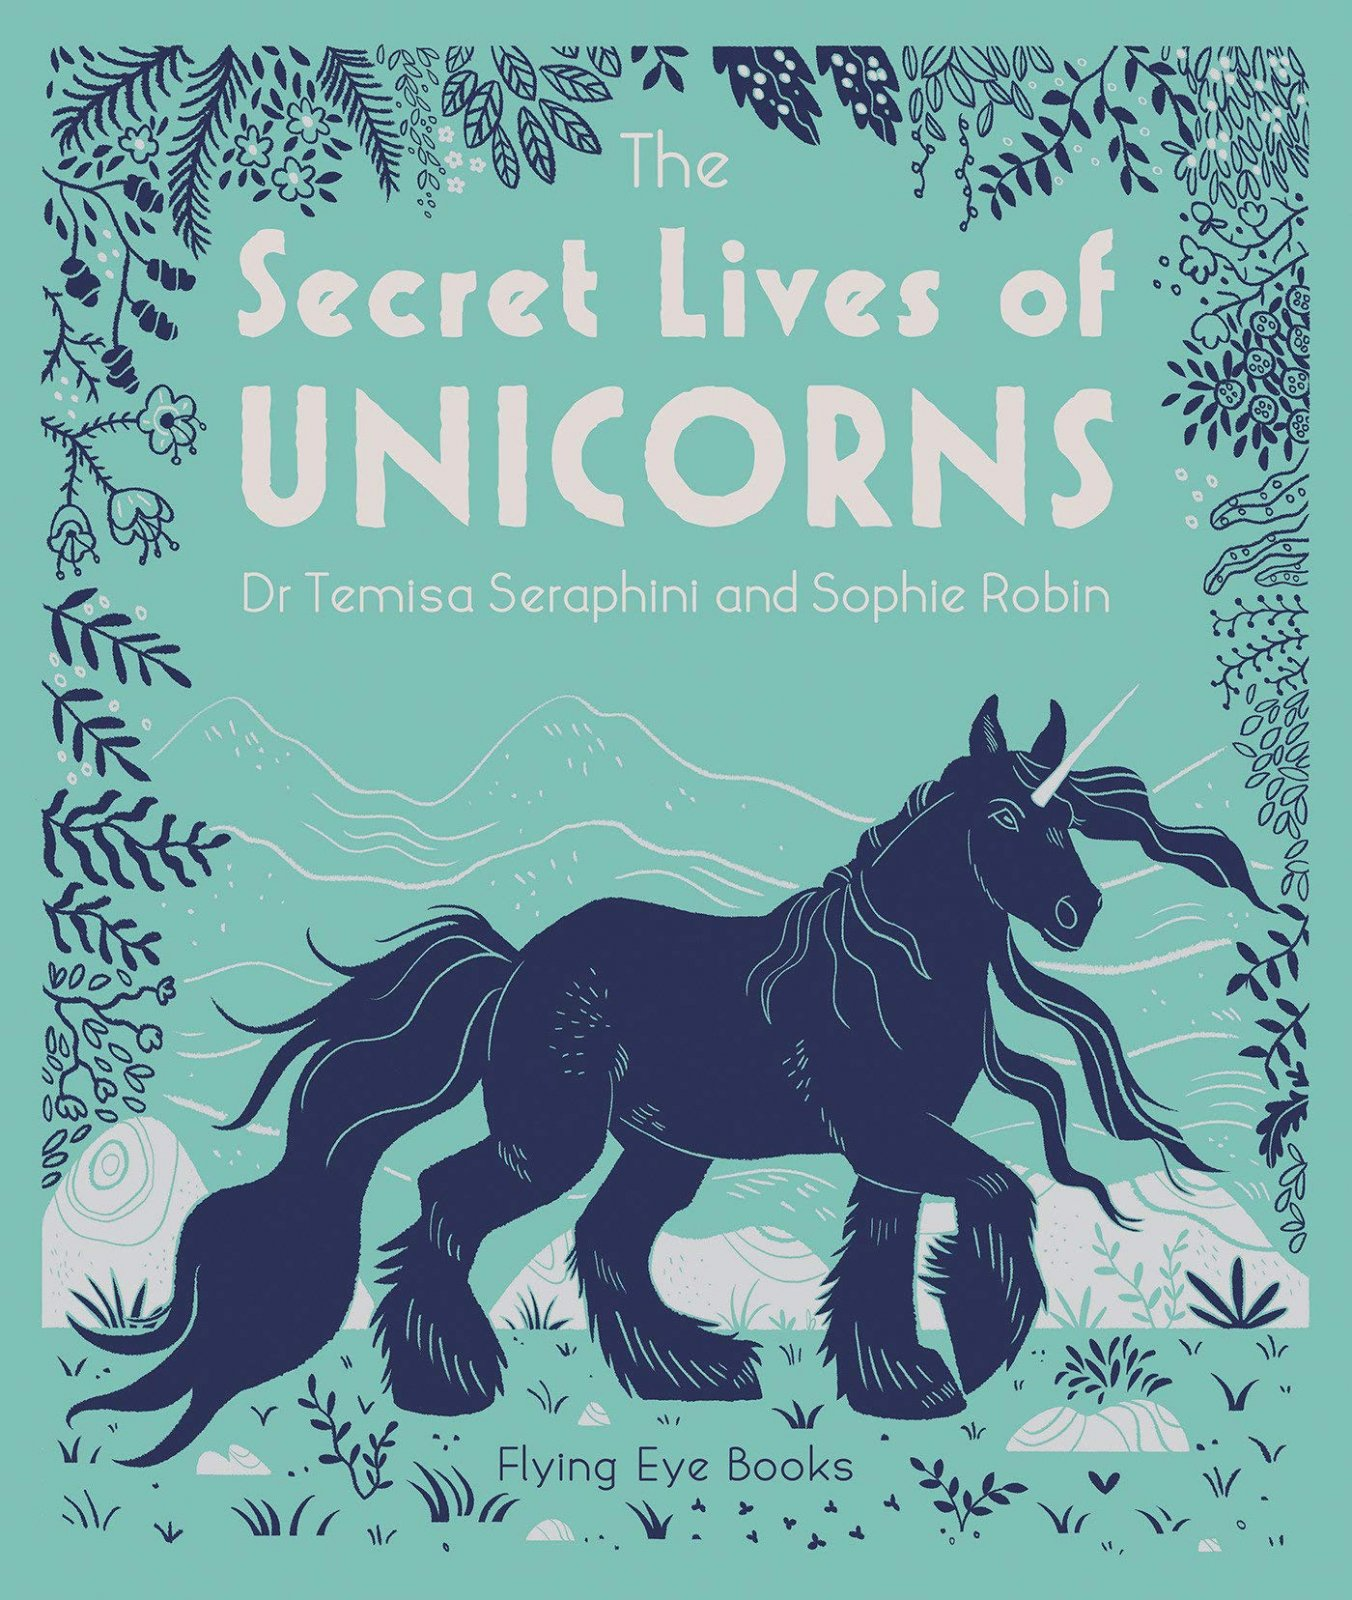 Secret Lives of Unicorns by Dr. Temisa Seraphini and Sophie Robin